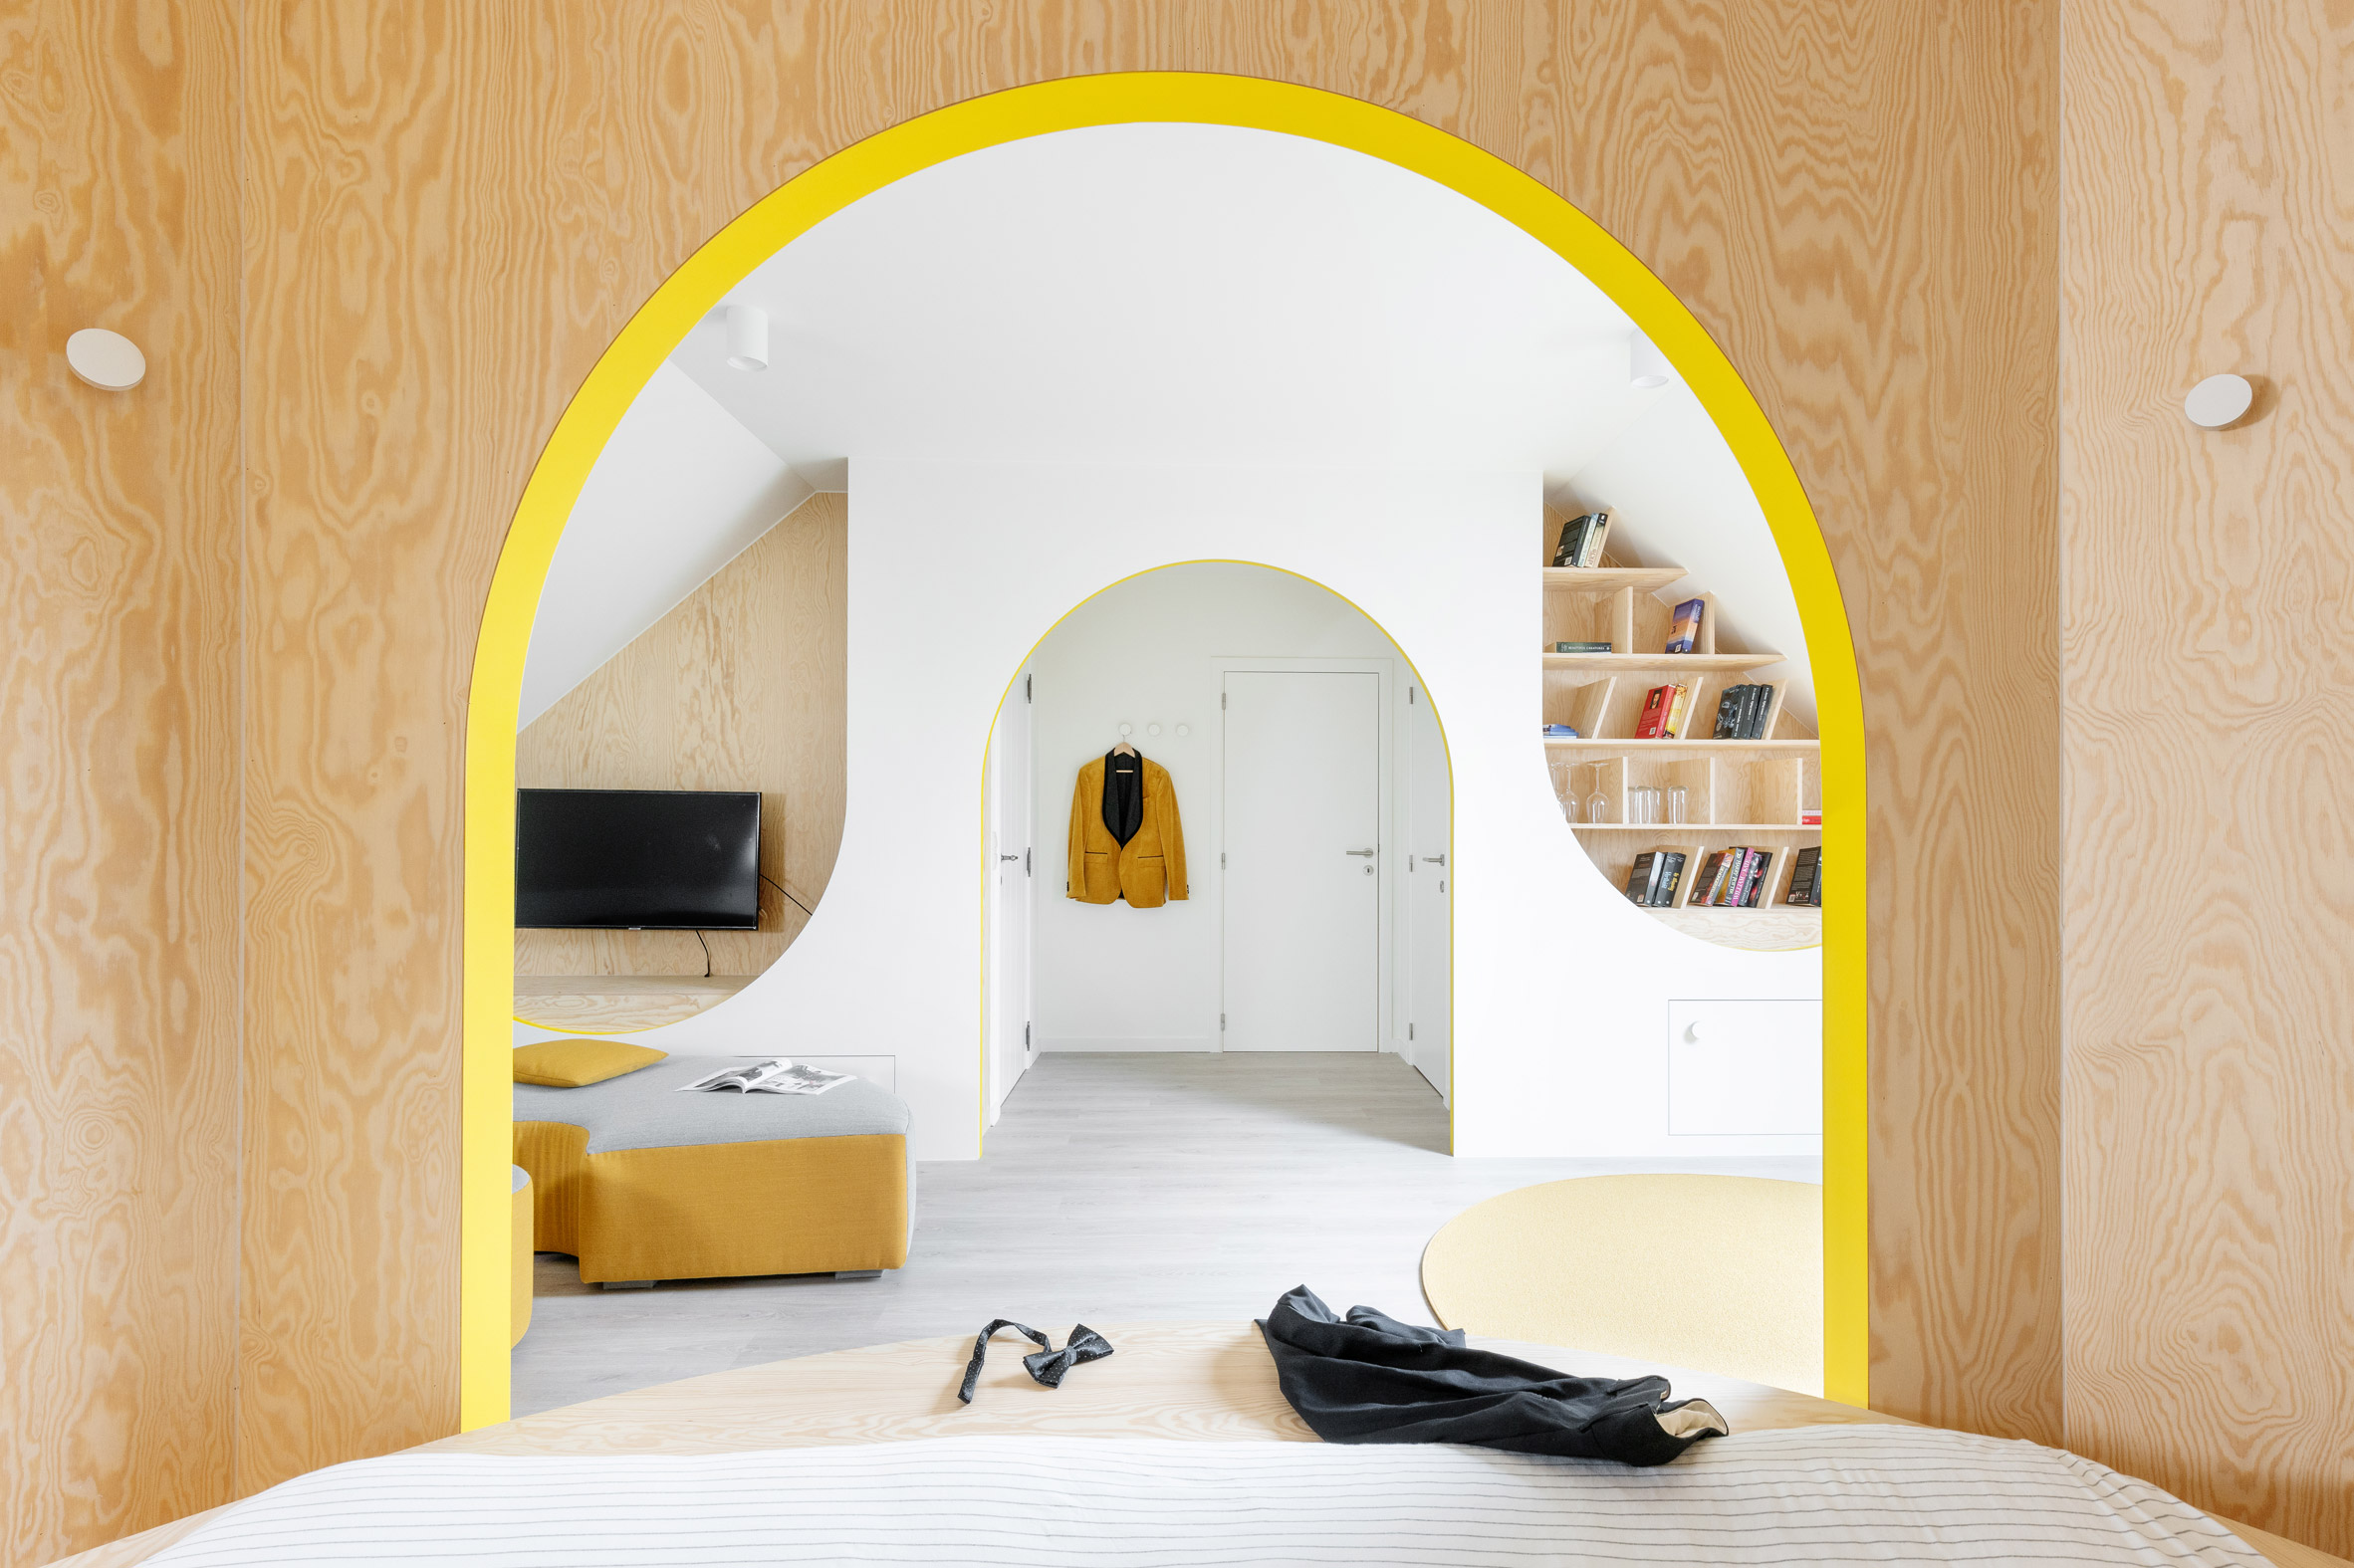 View of a bright room from a sleeping area.